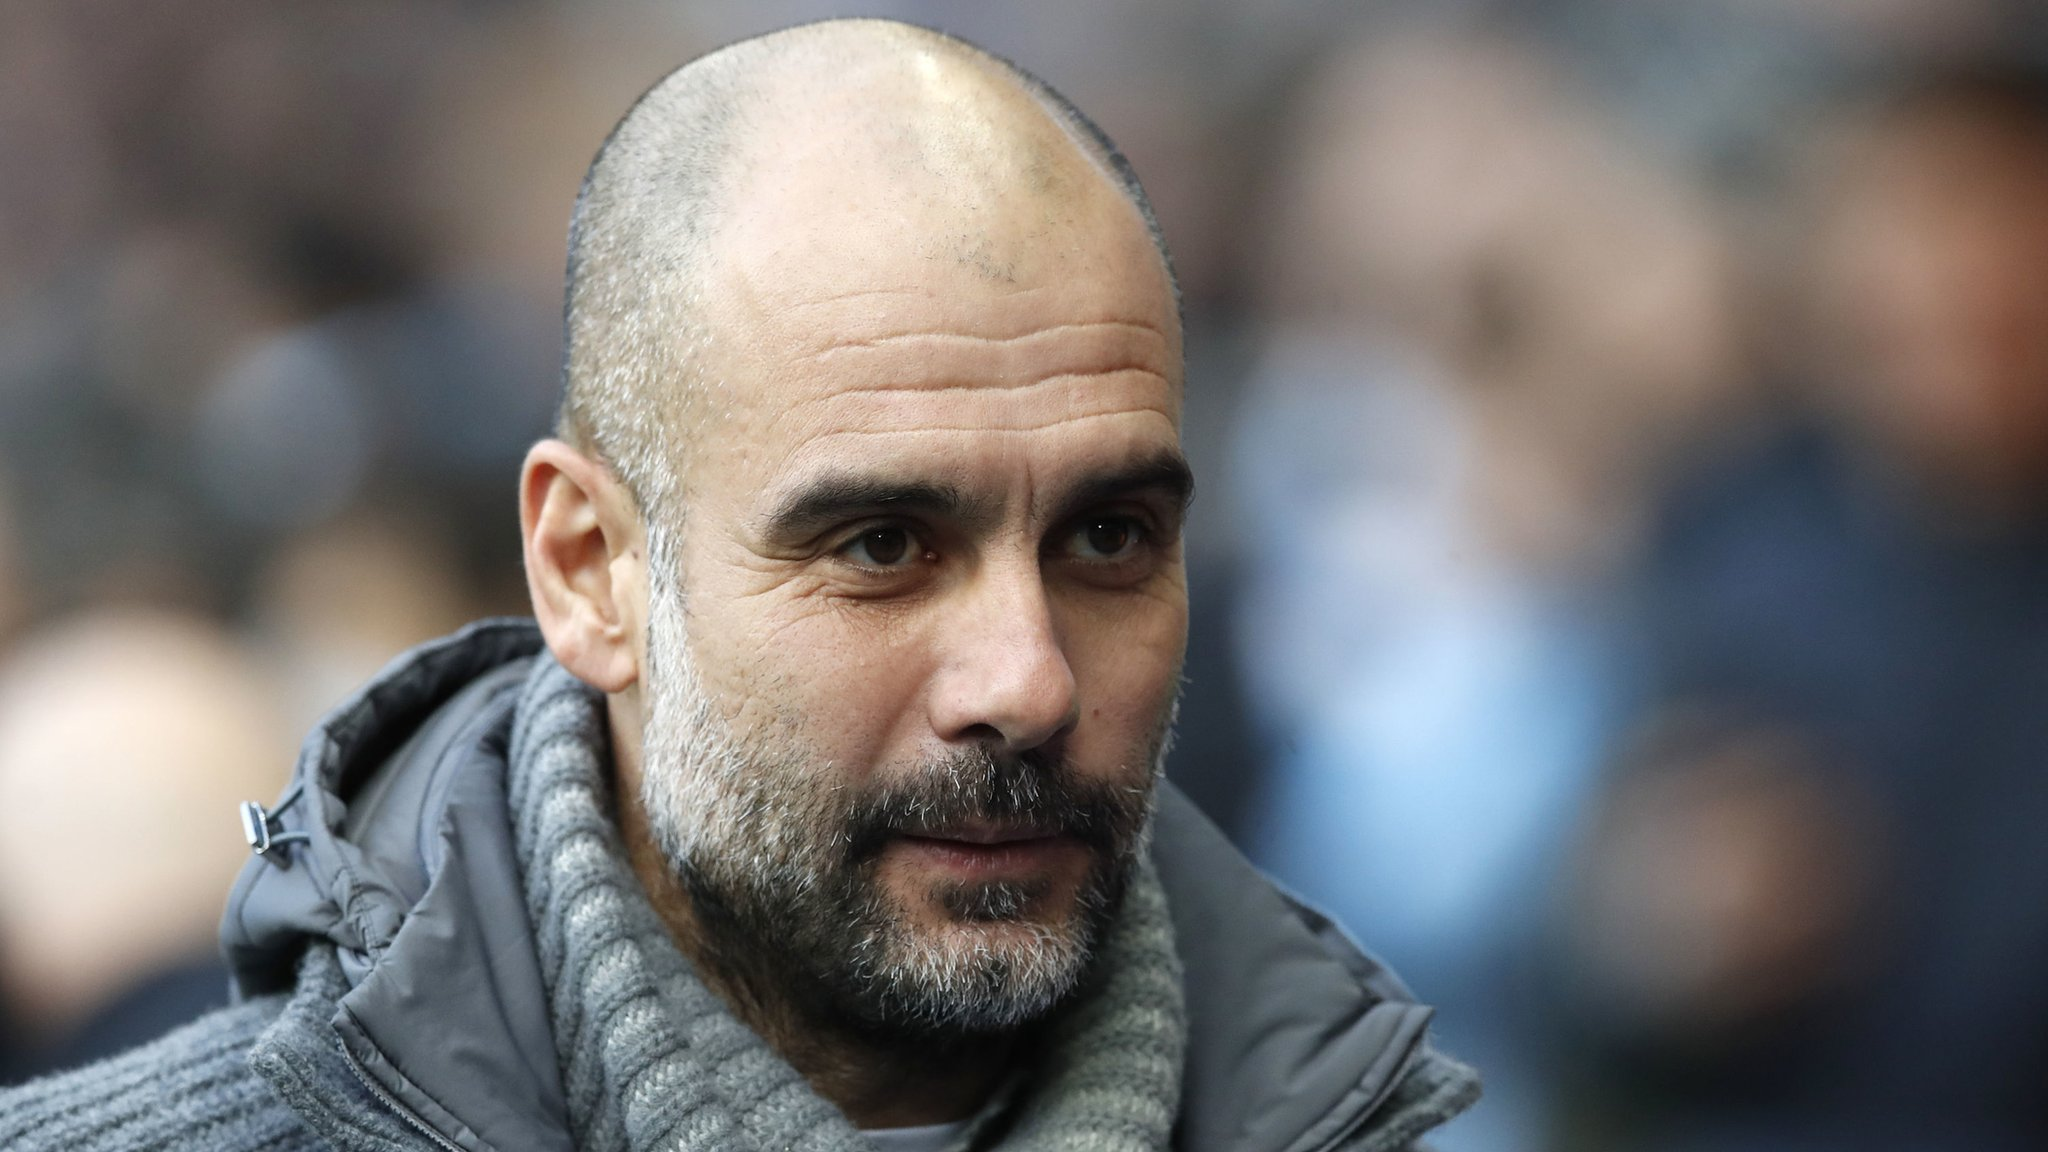 Man City boss Guardiola hopes Man Utd beat Liverpool